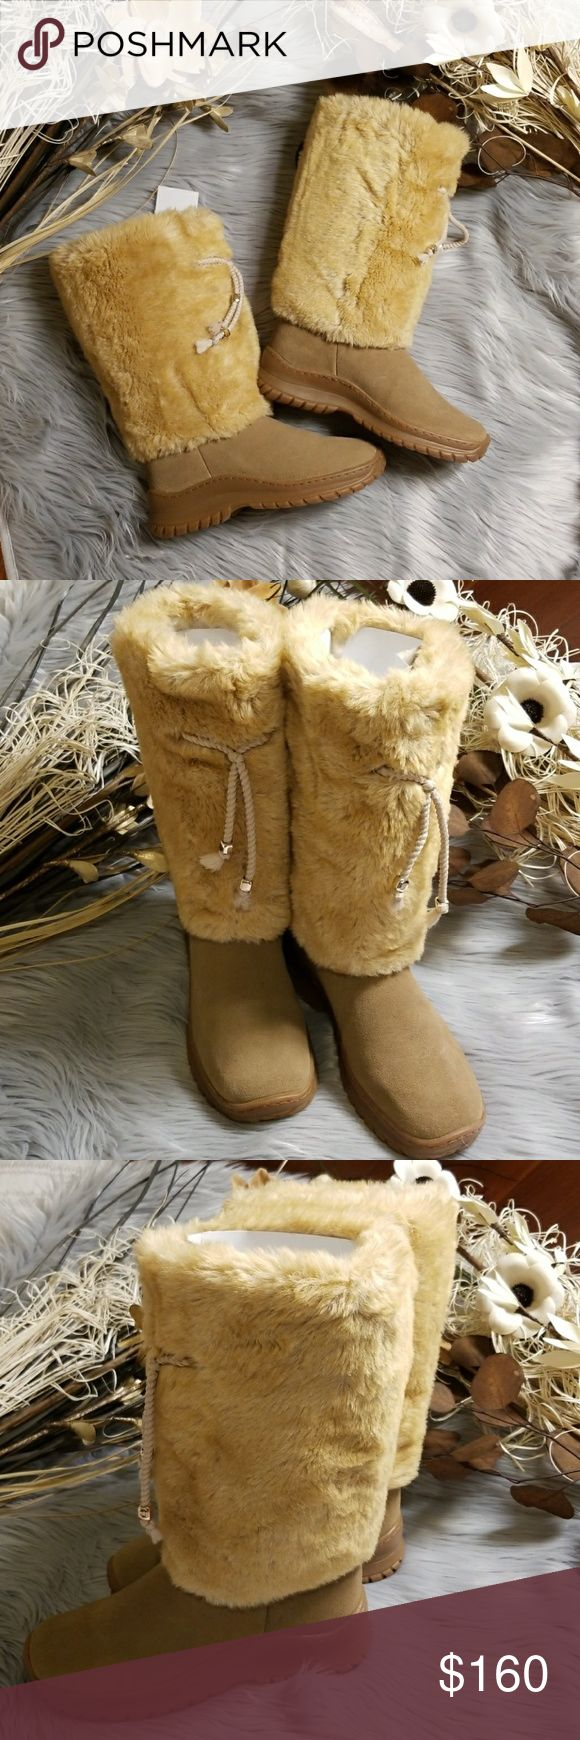 Oscar Sport Perla Faux Fur Boots Brand new never worn Color: Beige  Size 37  Made in Italy   MQ0000212185900 Oscar Sport Shoes Winter & Rain Boots